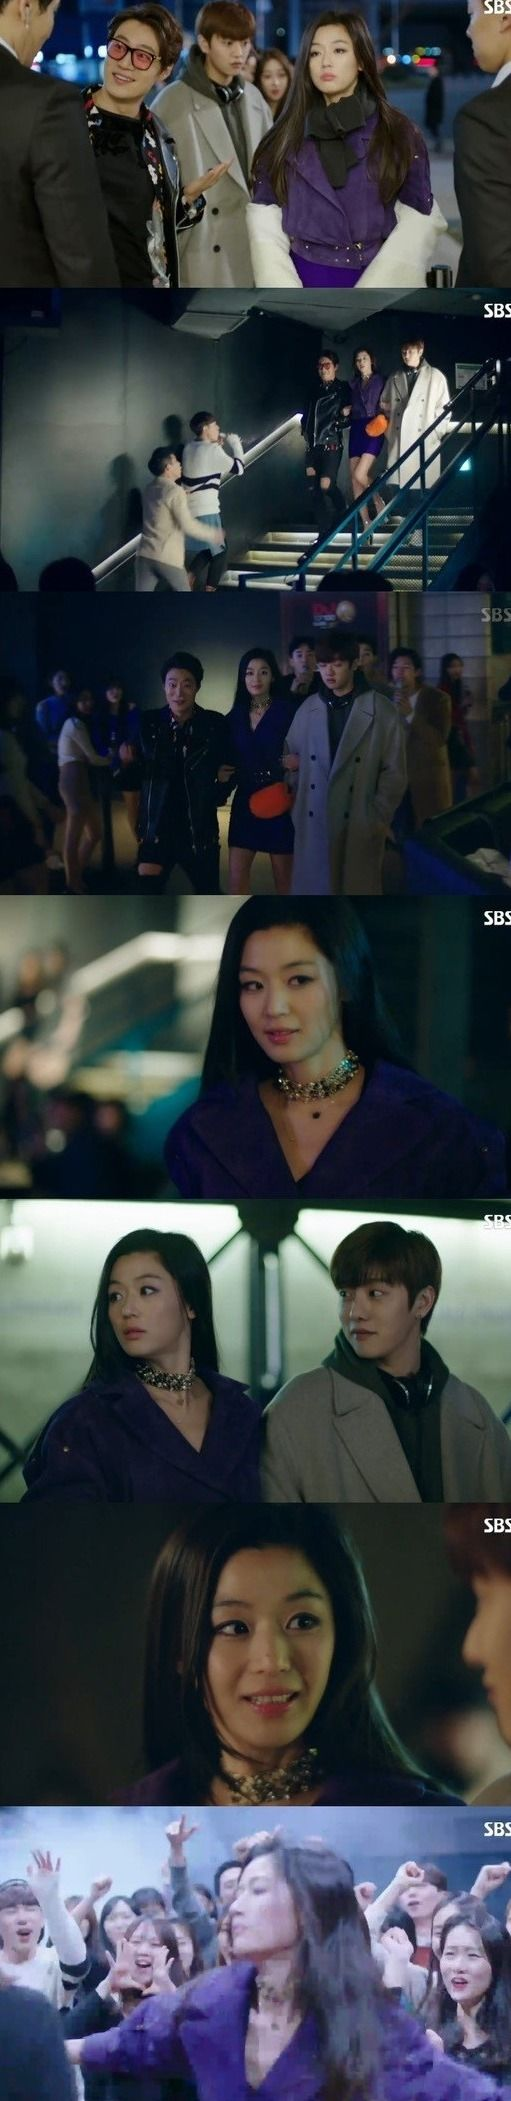 [Spoiler] Added episode 15 captures for the Korean drama 'The Legend of the Blue Sea' @ HanCinema :: The Korean Movie and Drama Database